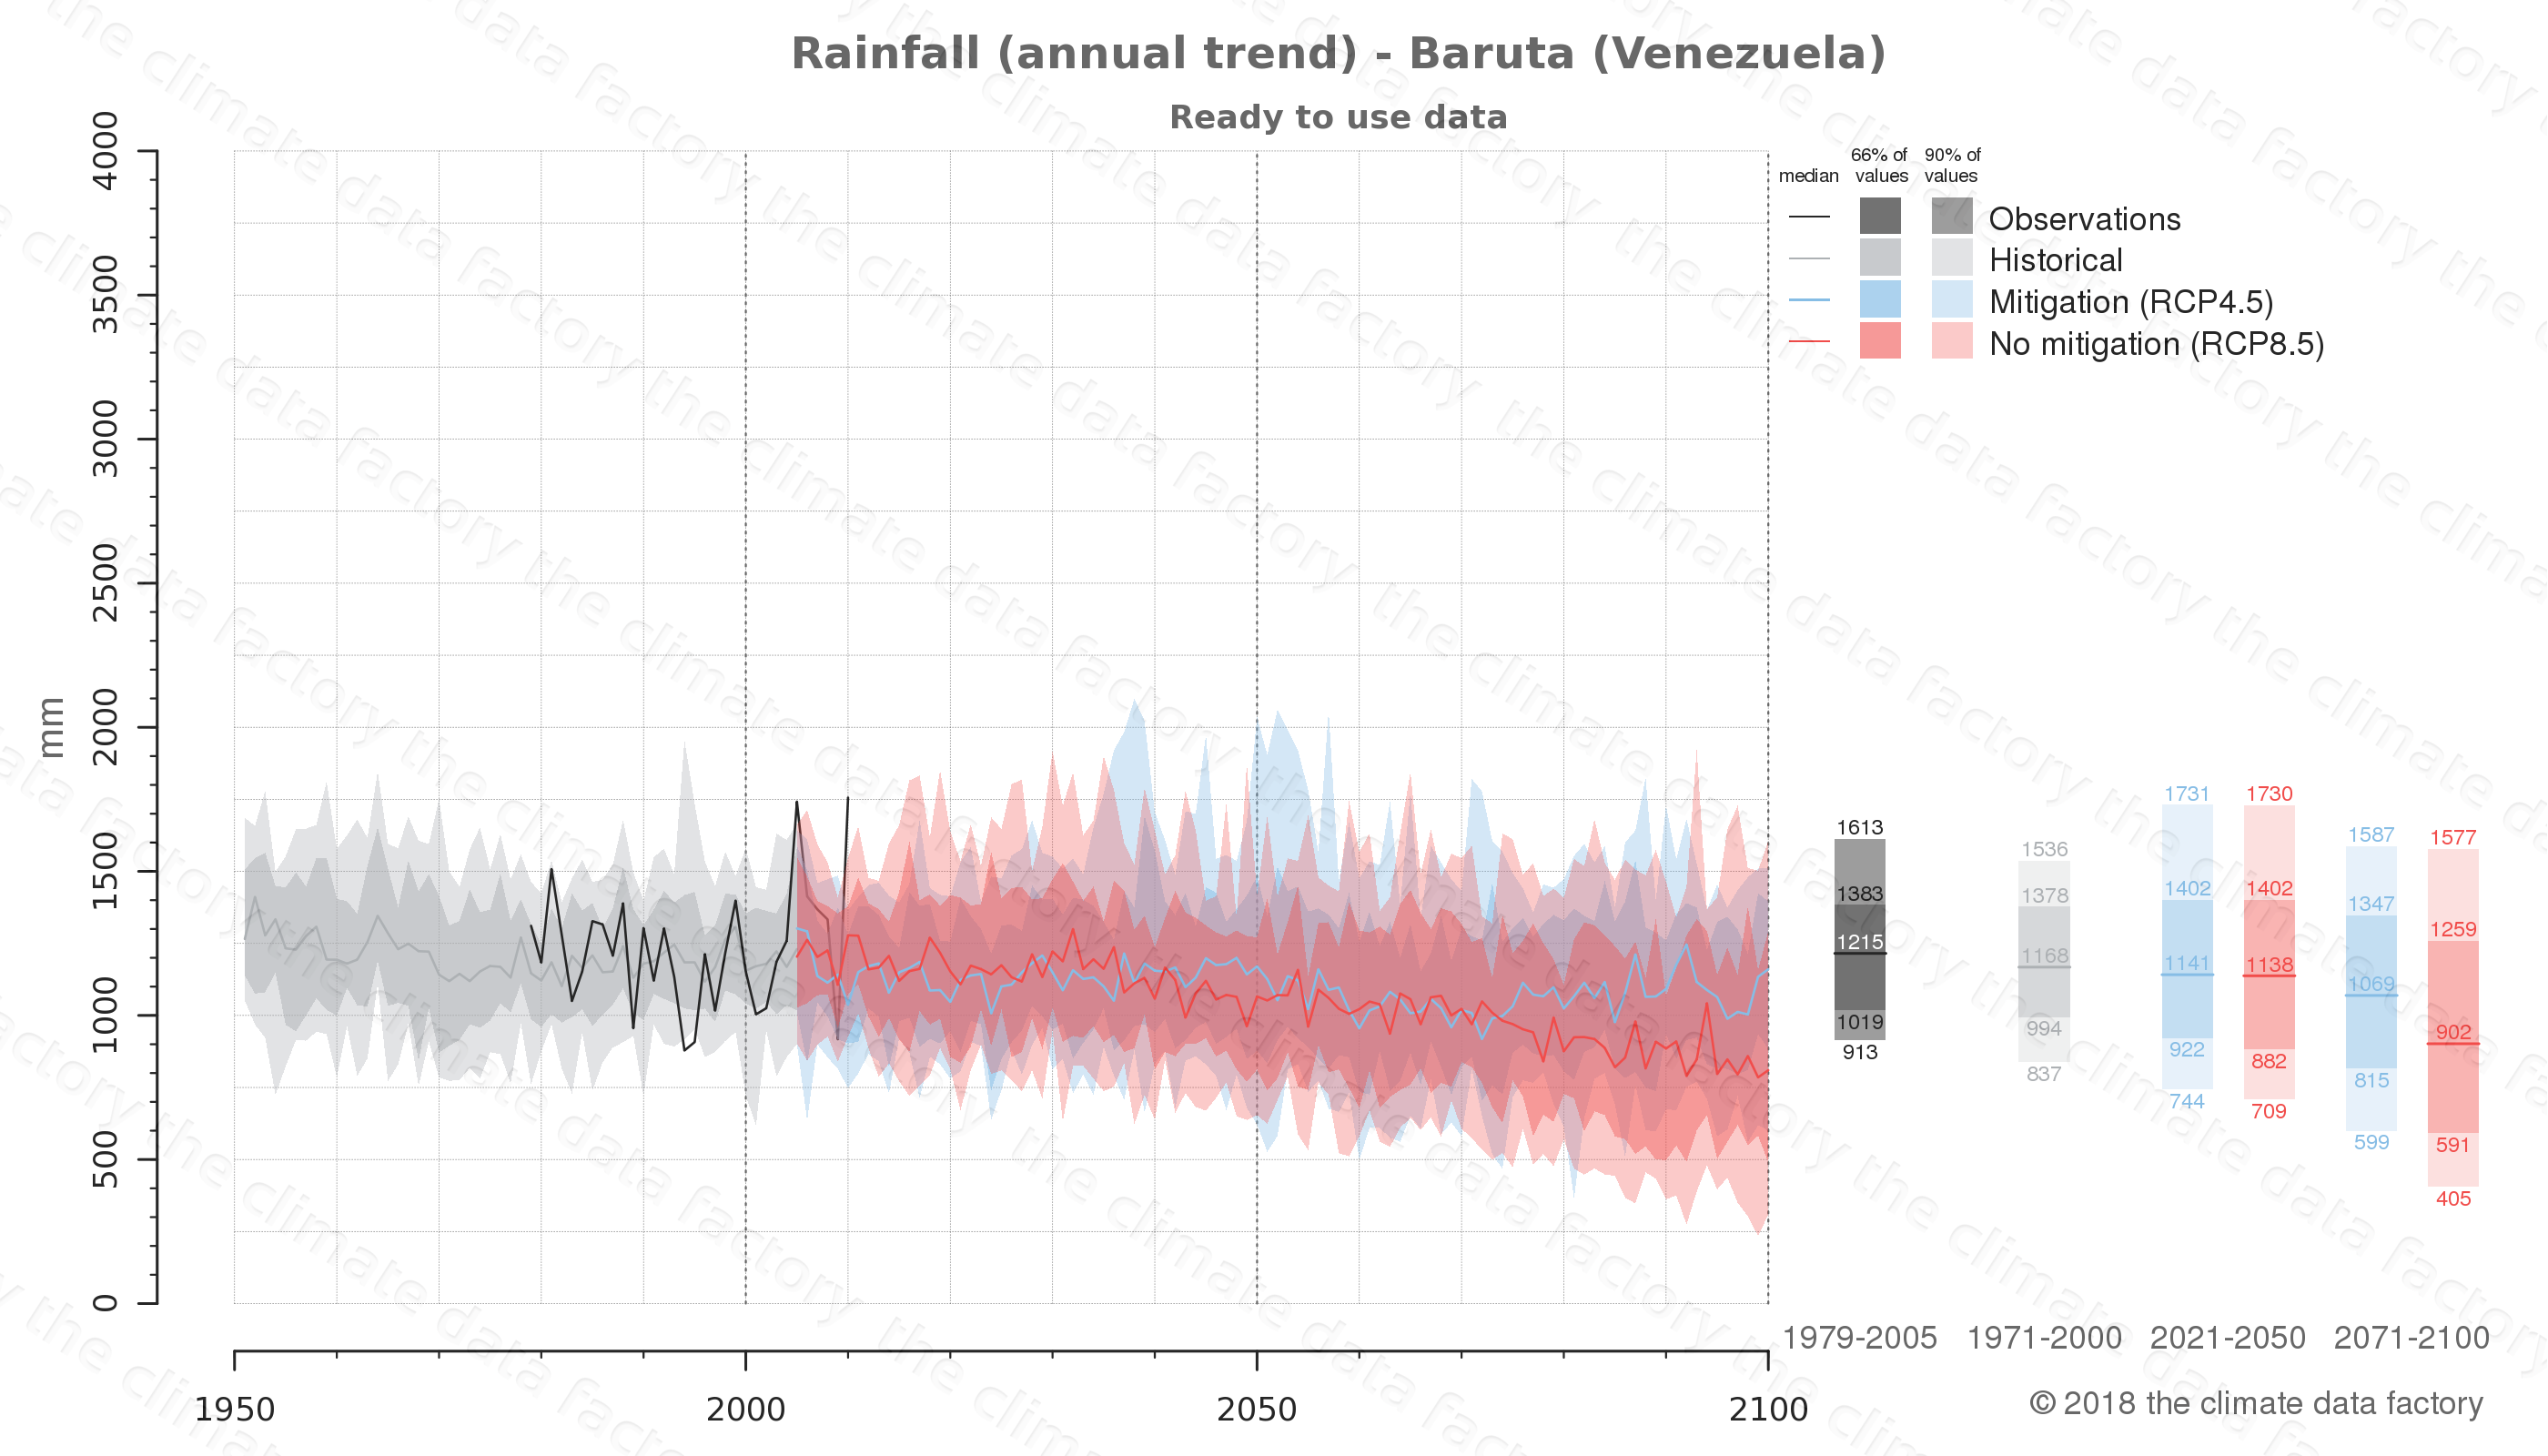 climate change data policy adaptation climate graph city data rainfall baruta venezuela